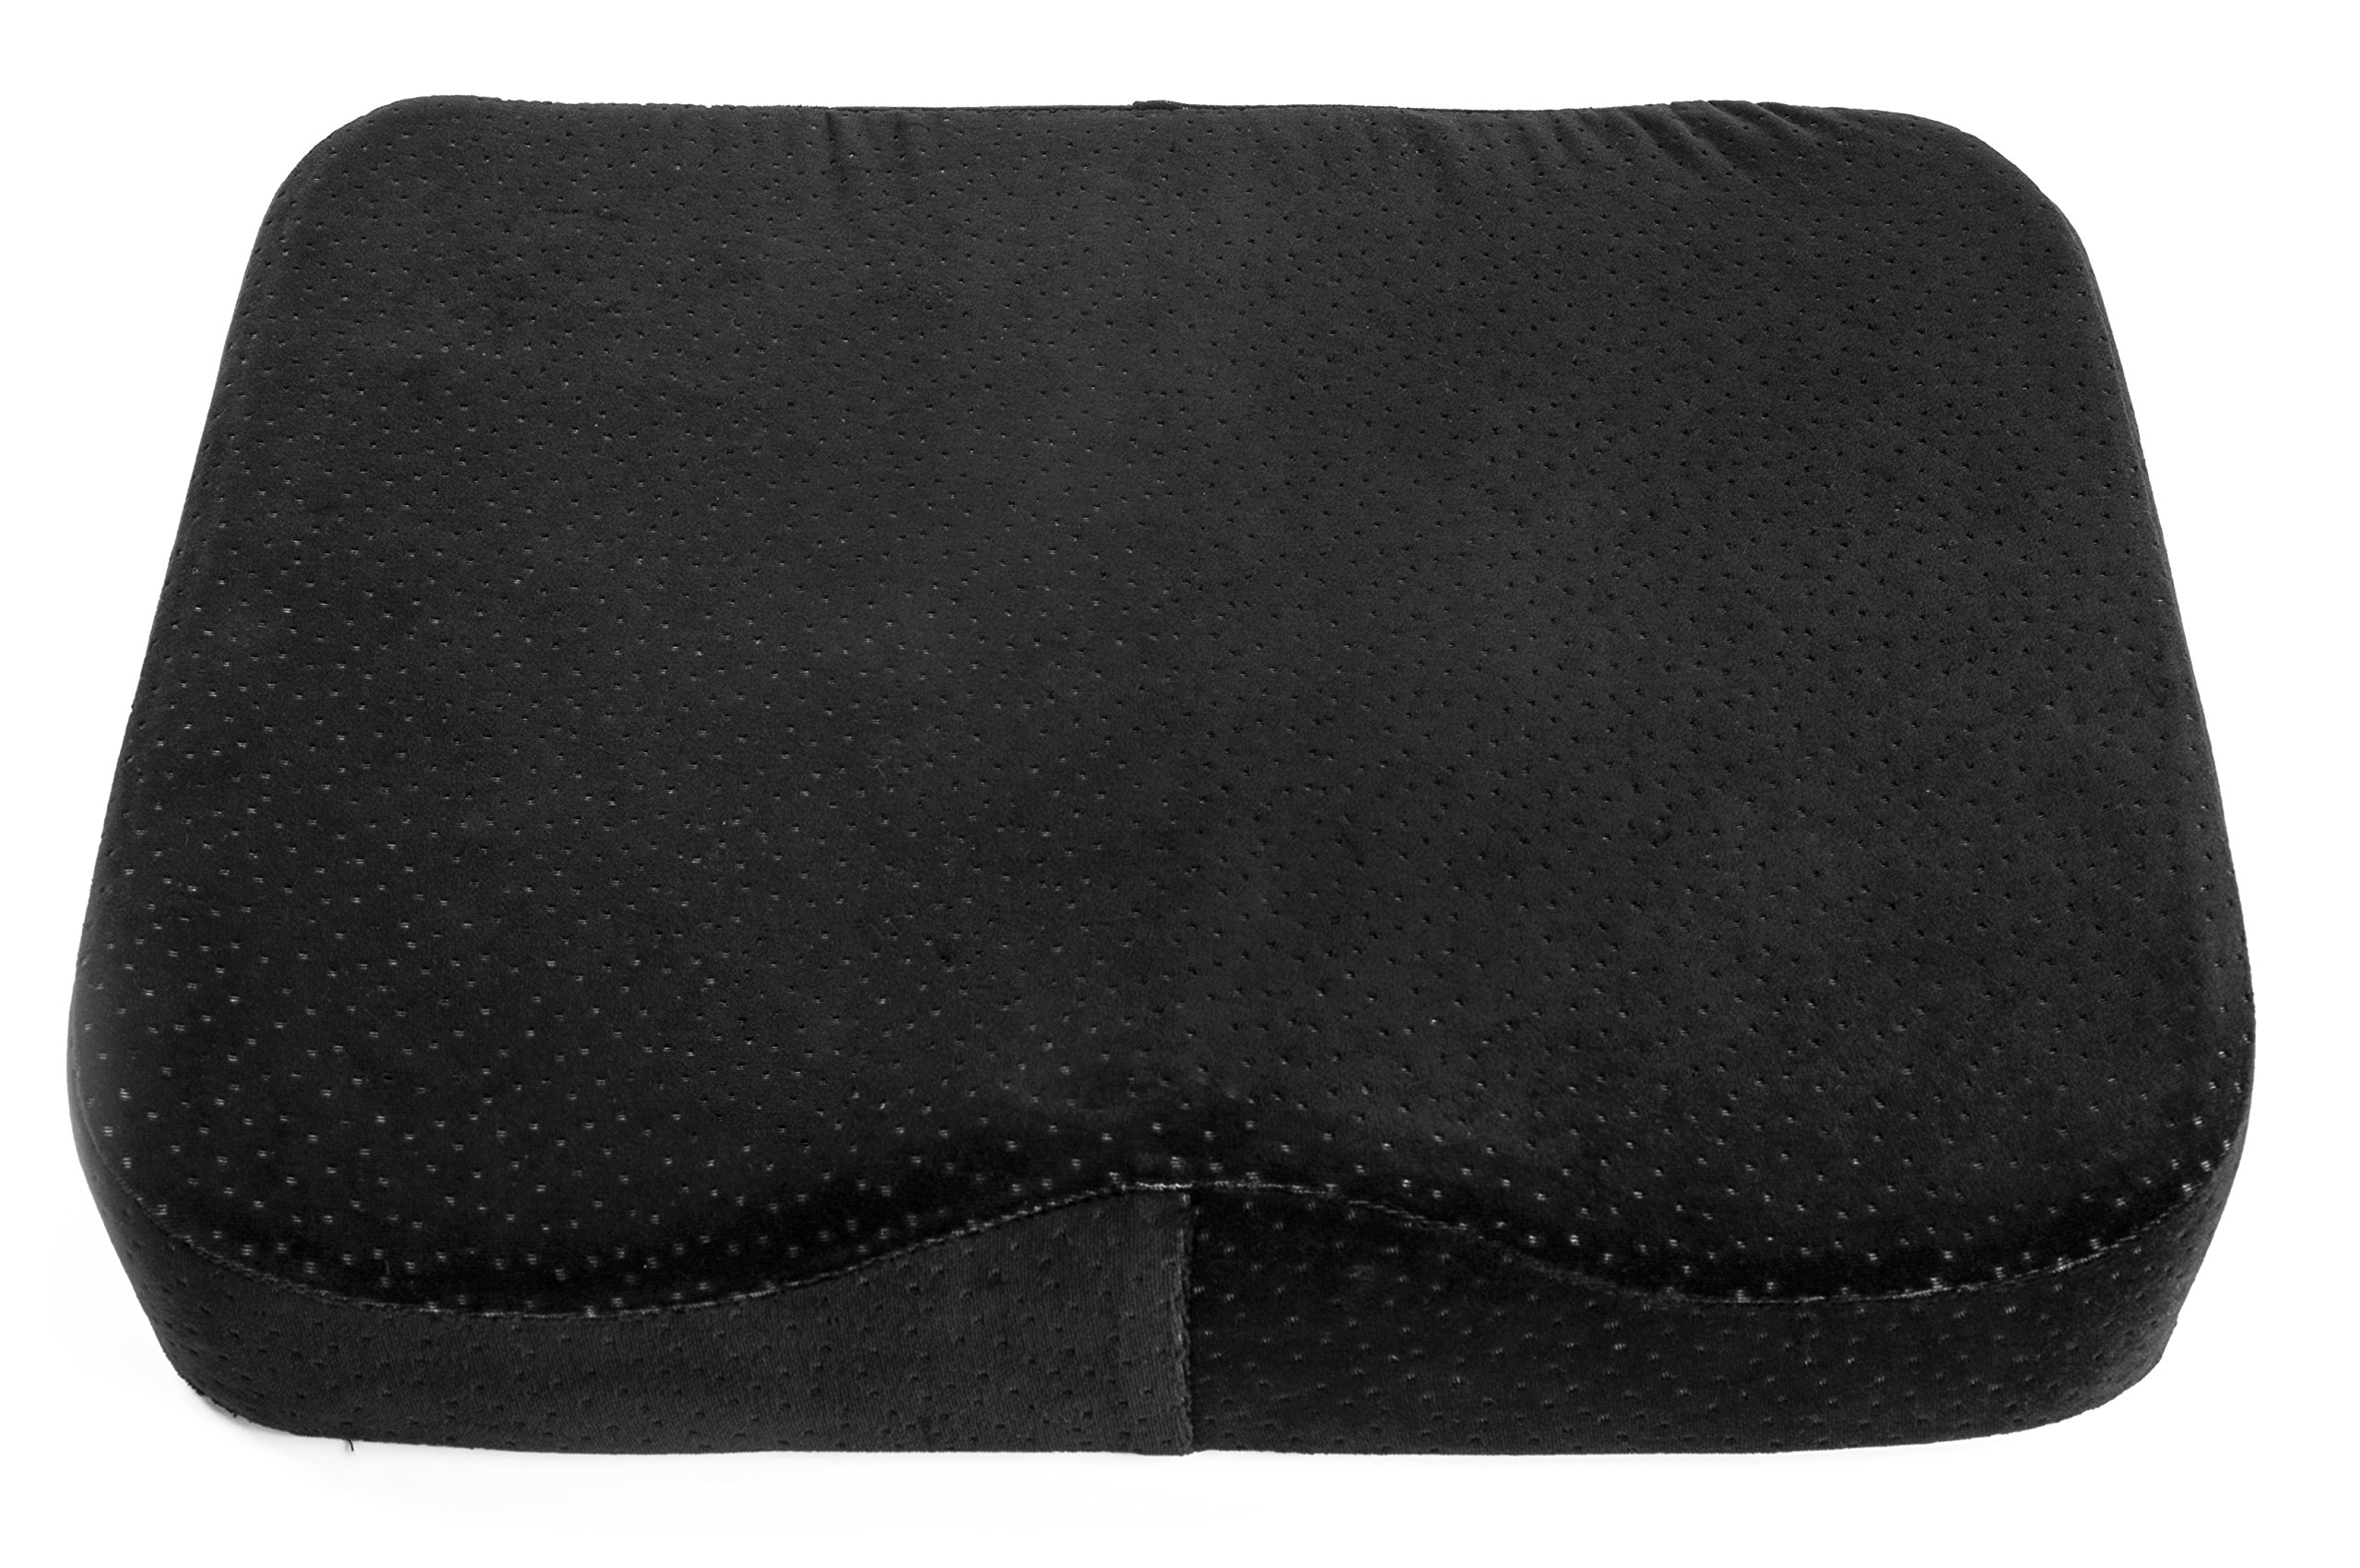 AERIS Memory Foam Seat Cushion Premium Large Office Chair Pad with a Buckle to Prevent Sliding-Car Machine Washable Black Plush Velour Cover by AERIS (Image #2)